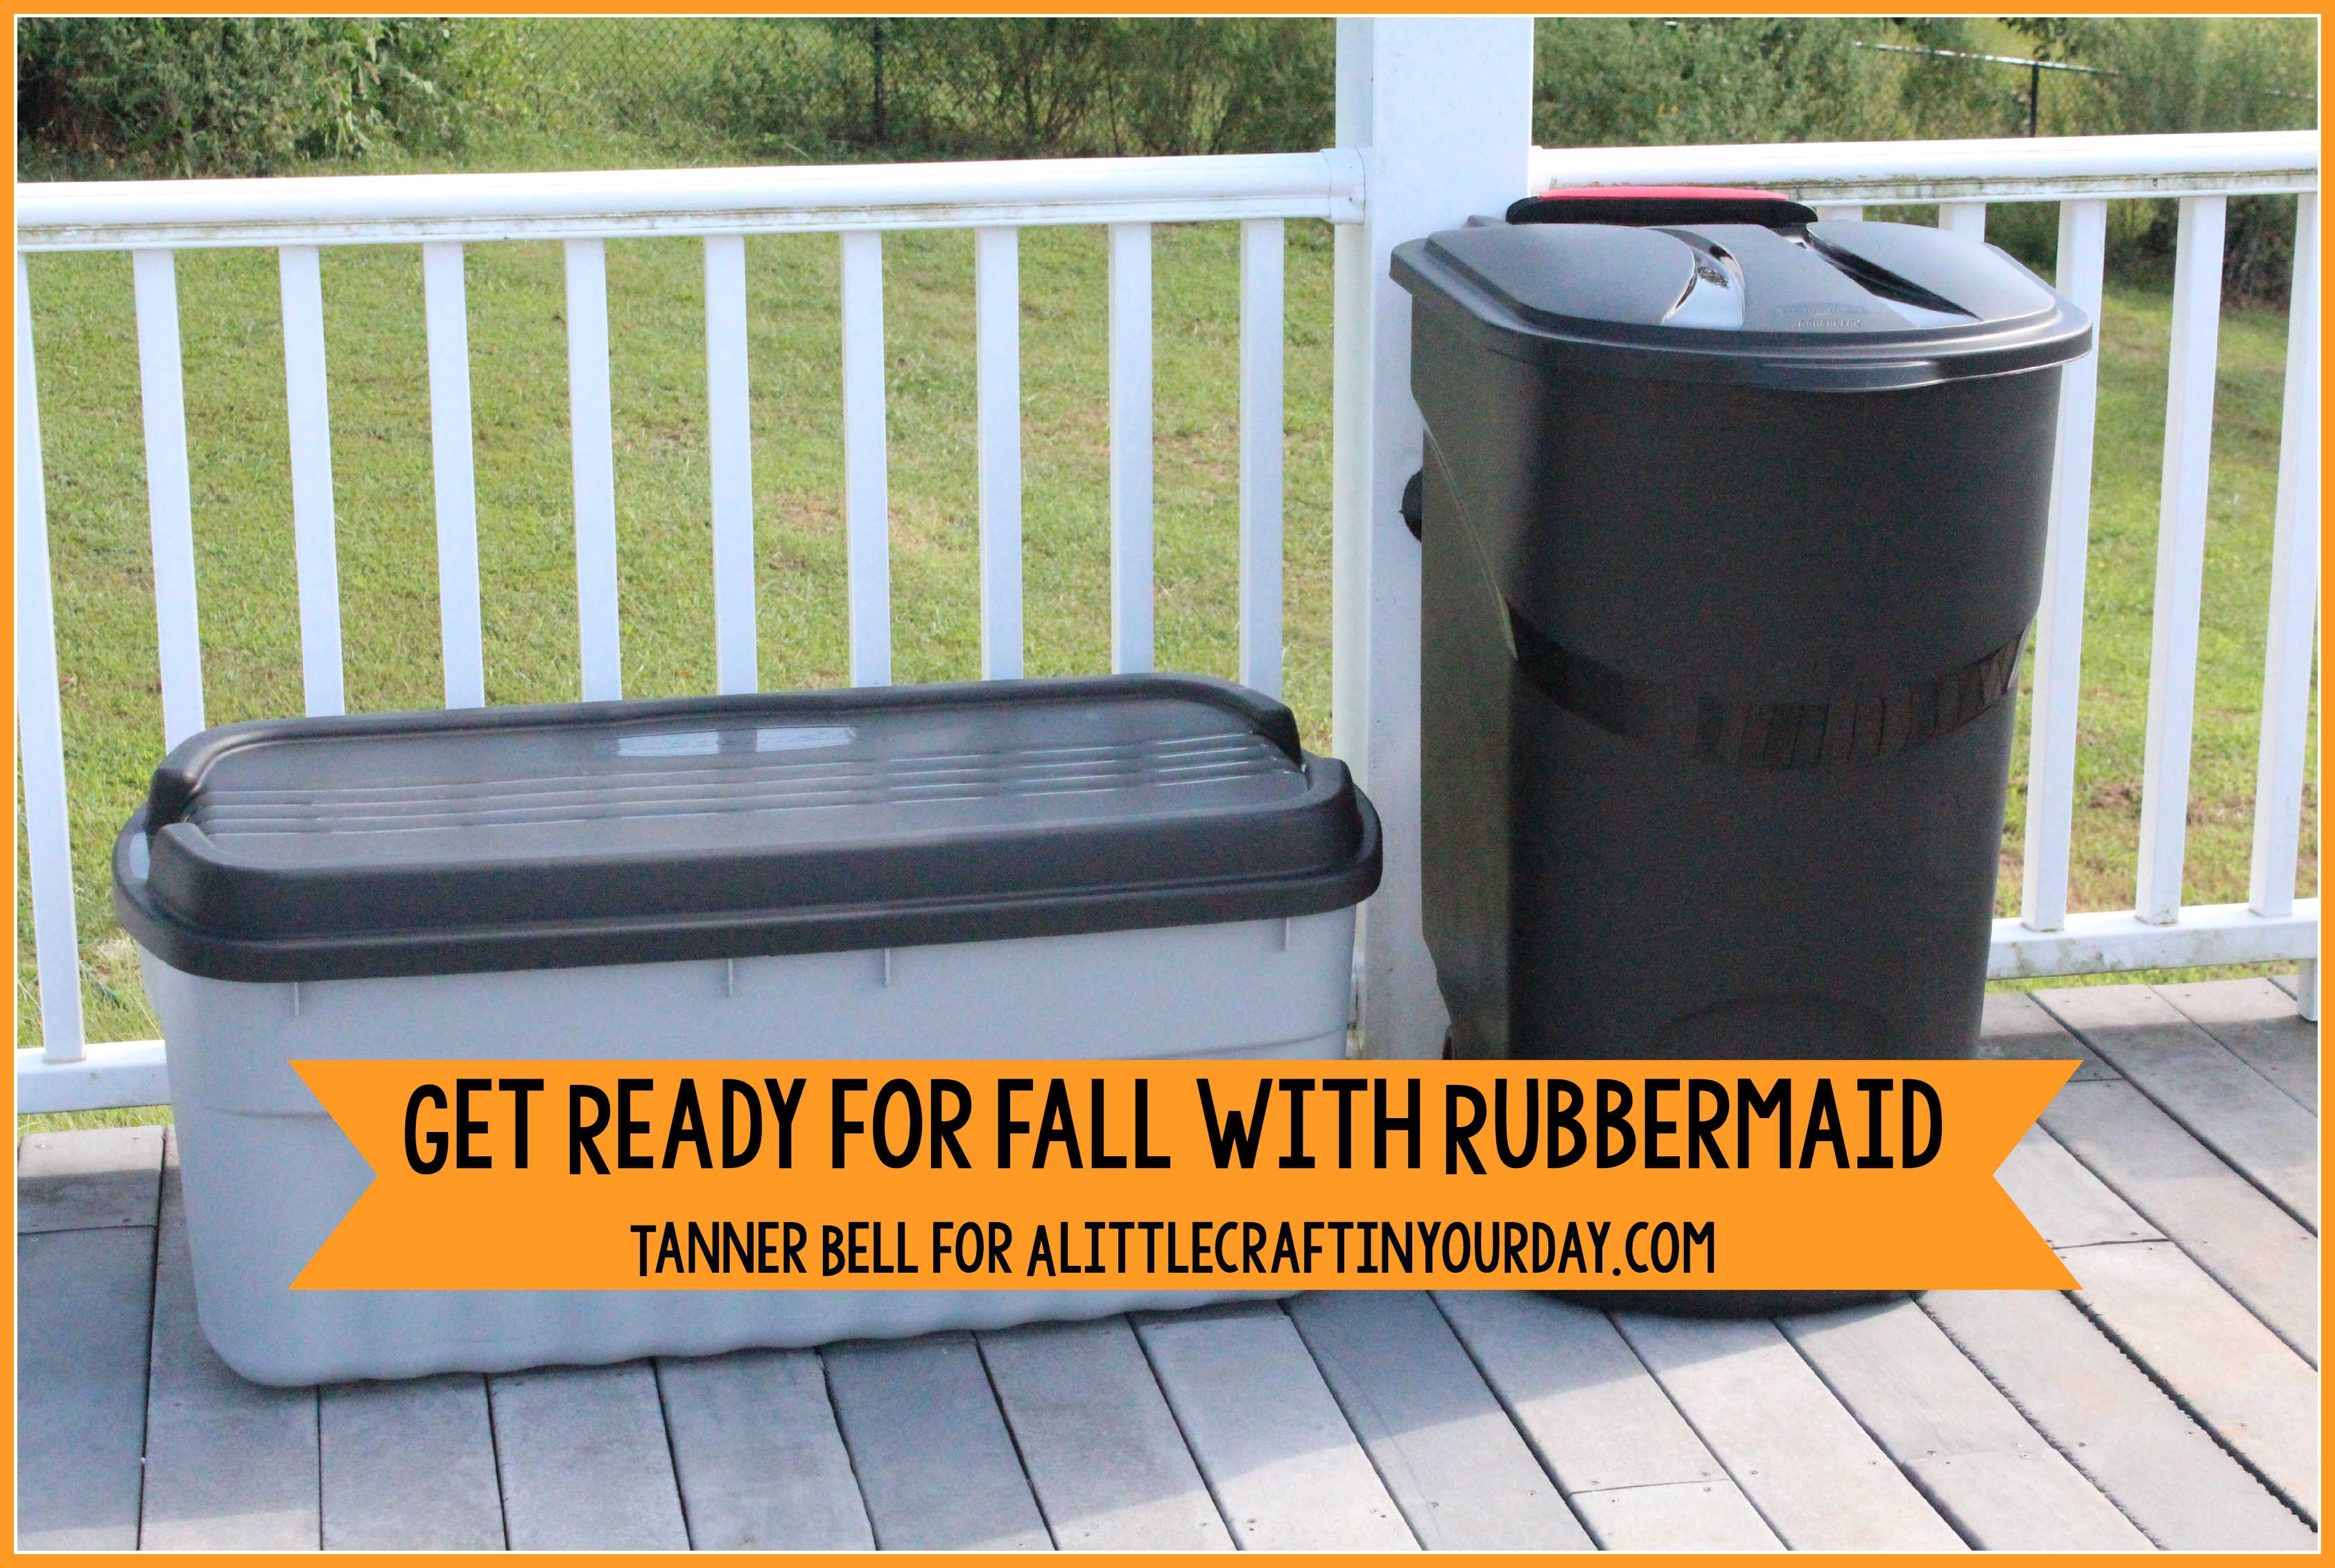 Get ready for fall with rubbermaid fallfixup a little for Getting ready for fall